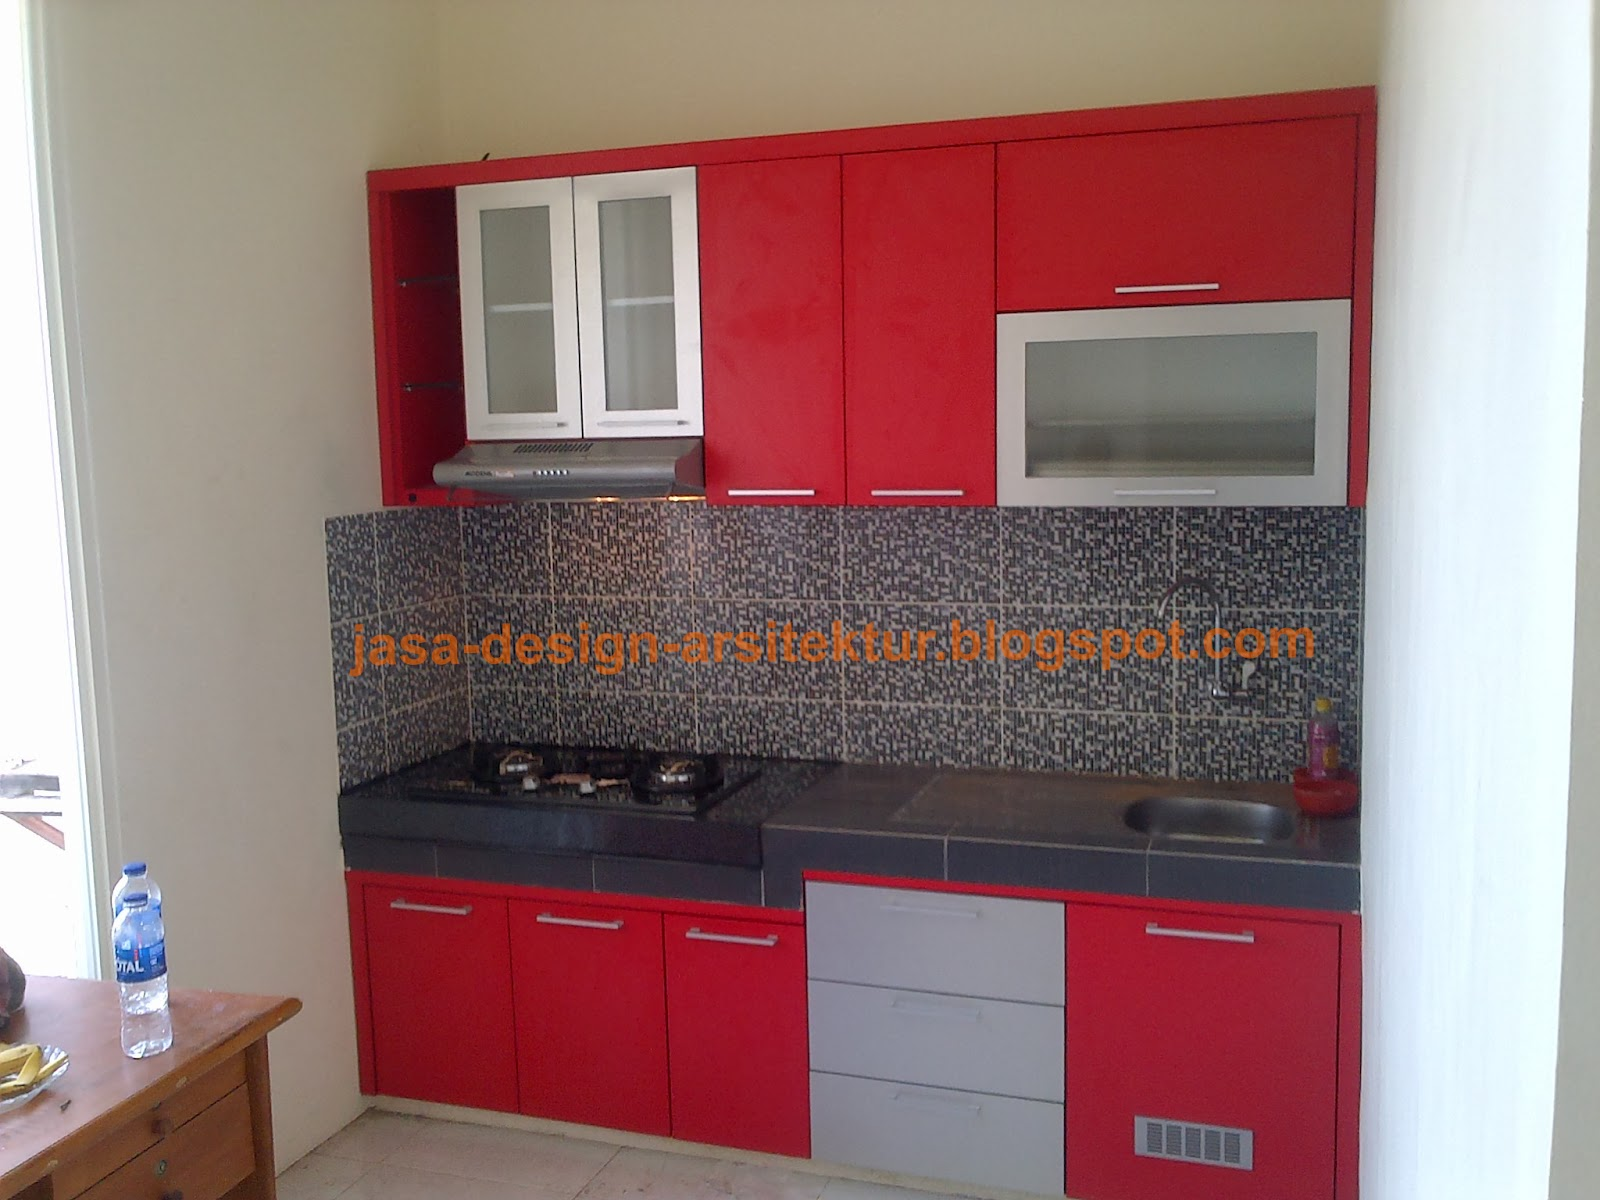 Kontraktor interior surabaya sidoarjo kitchen set warna merah for Harga kitchen set sederhana